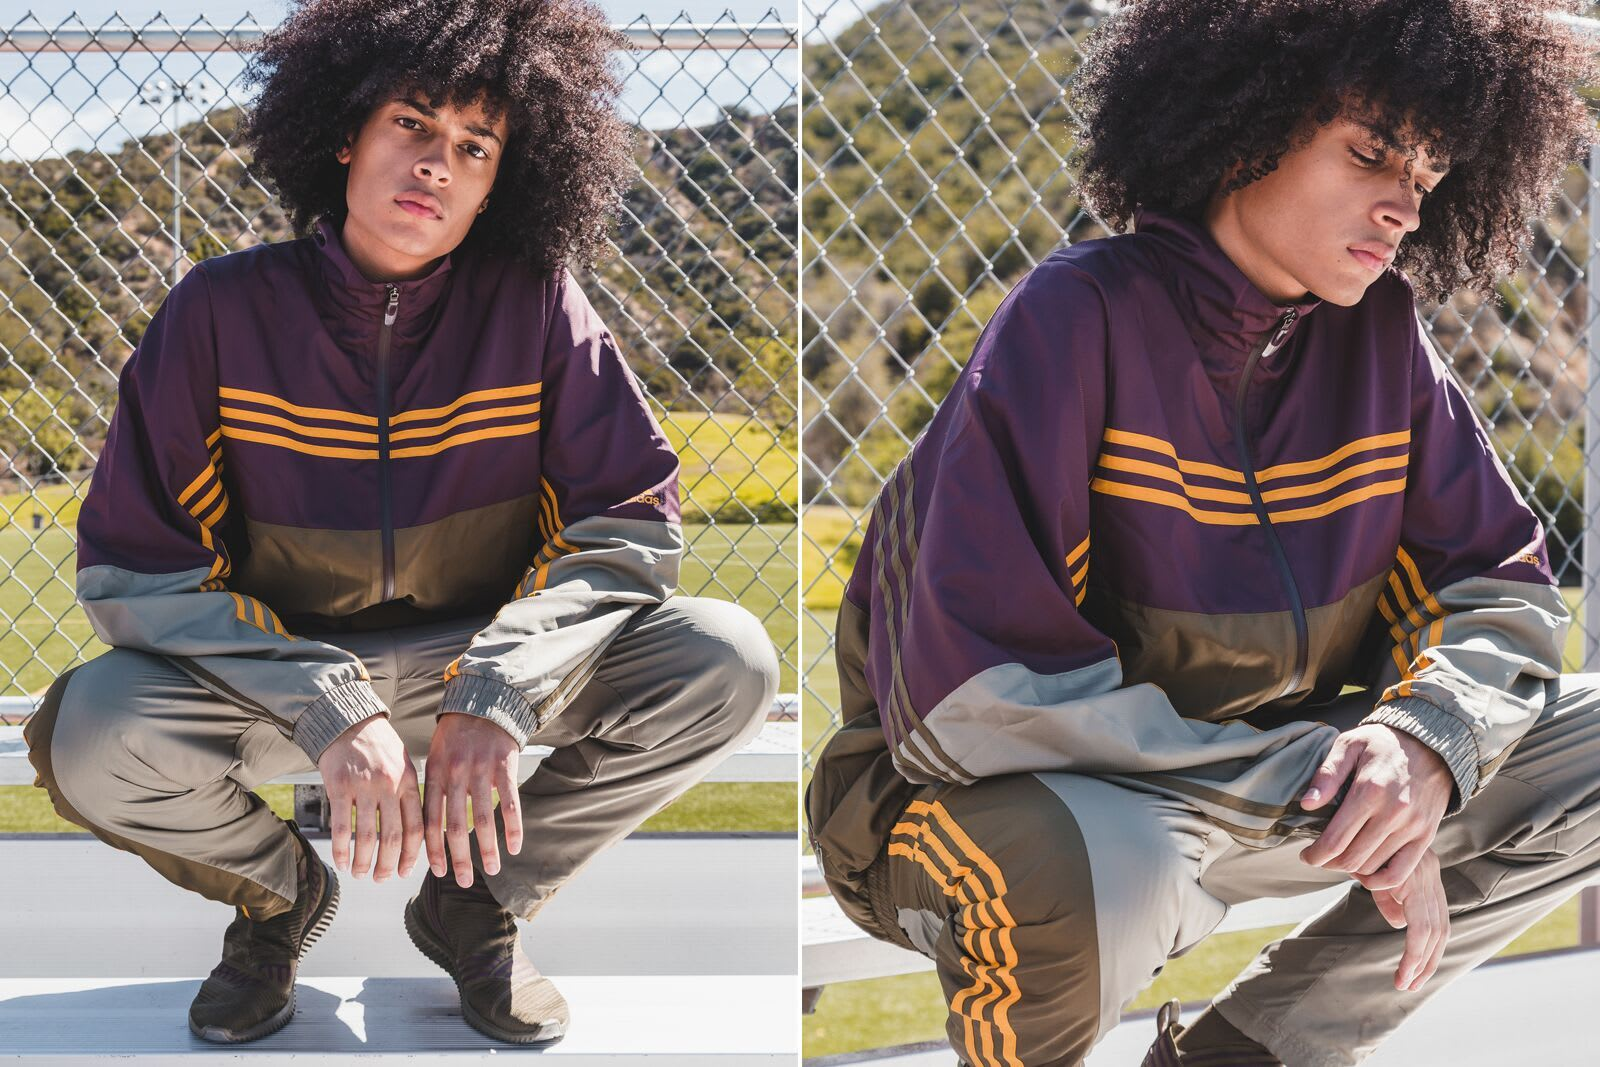 c8c7417175fb Kith and Adidas Soccer L.A. Rays Collection • Urban